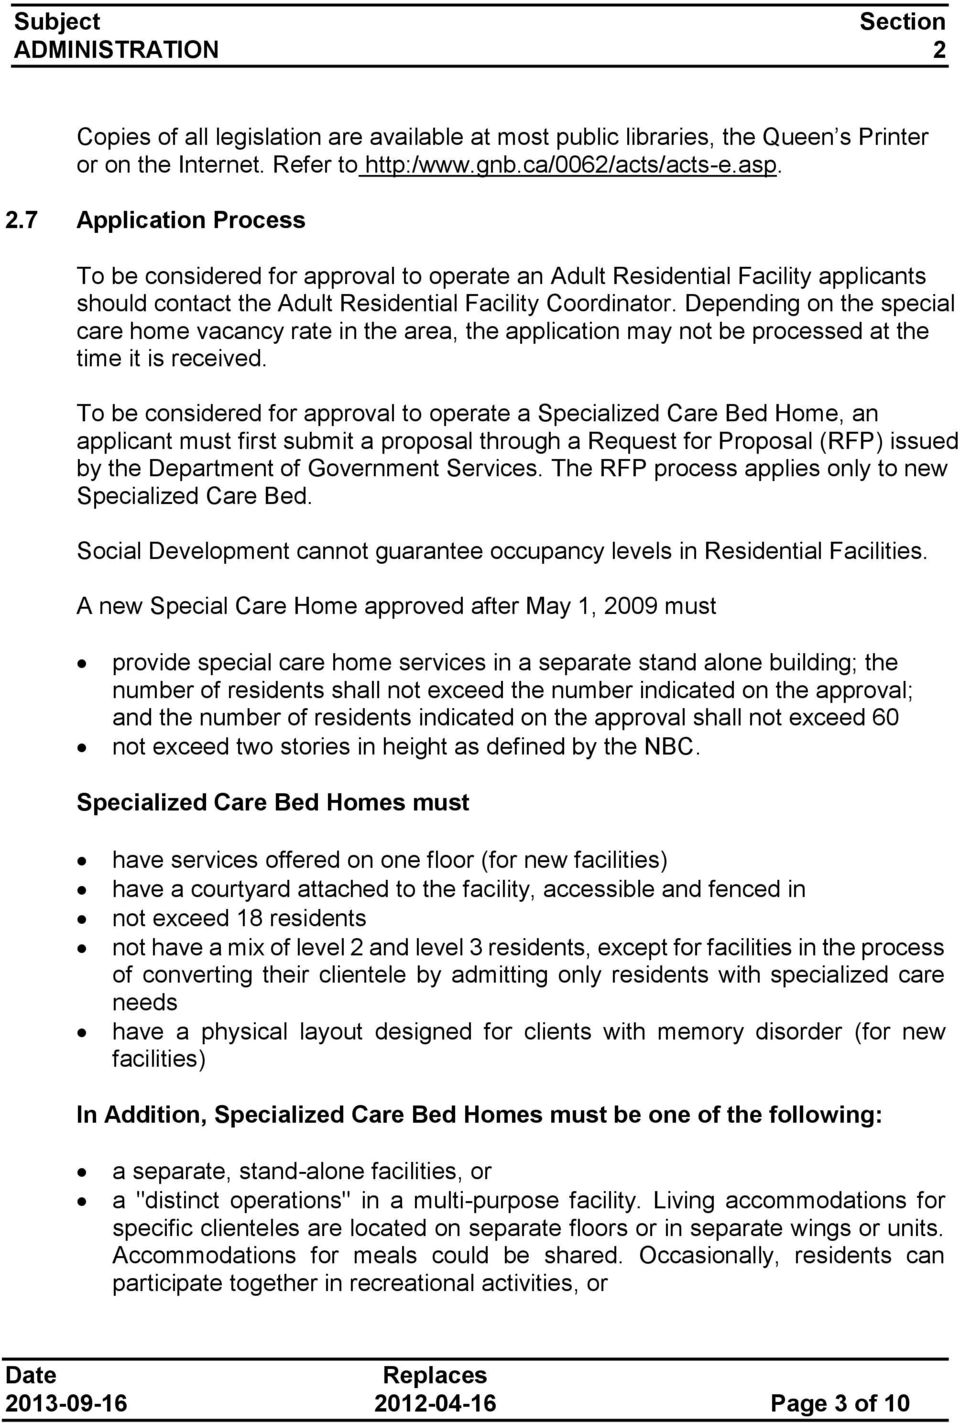 To be considered for approval to operate a Specialized Care Bed Home, an applicant must first submit a proposal through a Request for Proposal (RFP) issued by the Department of Government Services.